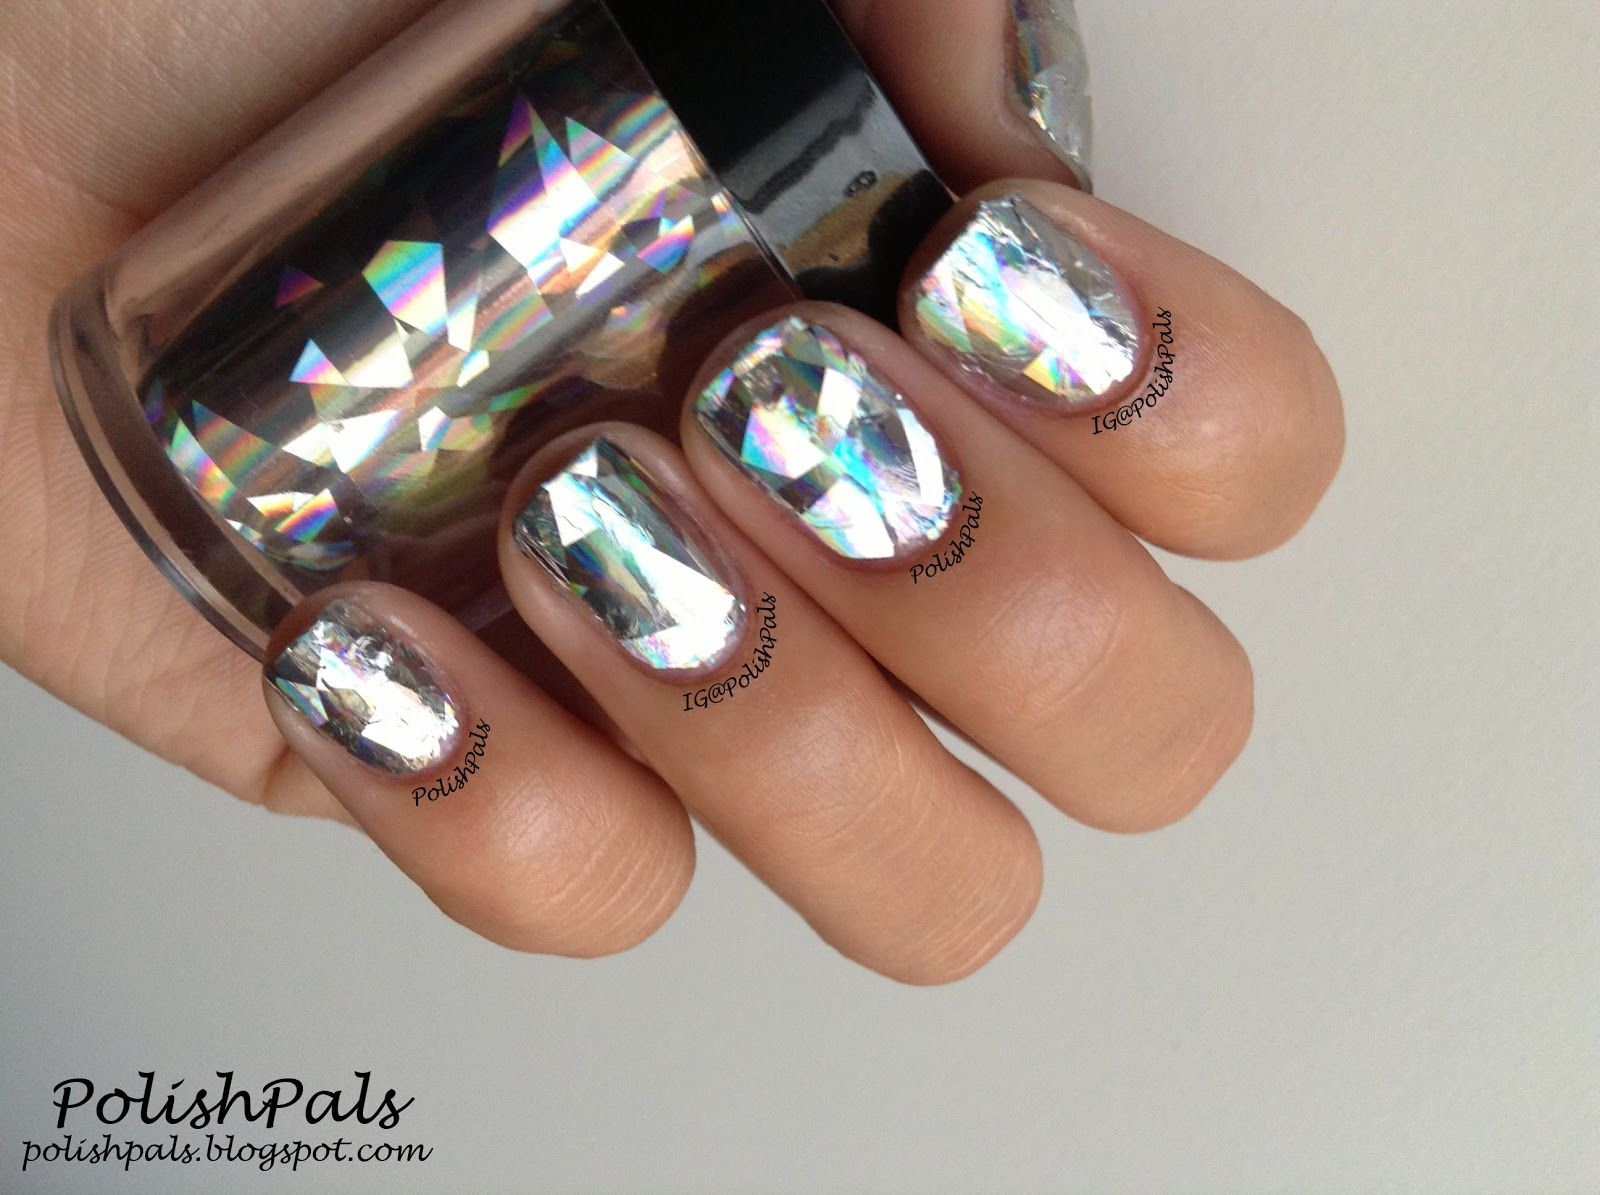 Pin by Linda York on Fun and funky styles | Pinterest | Nail foil ...